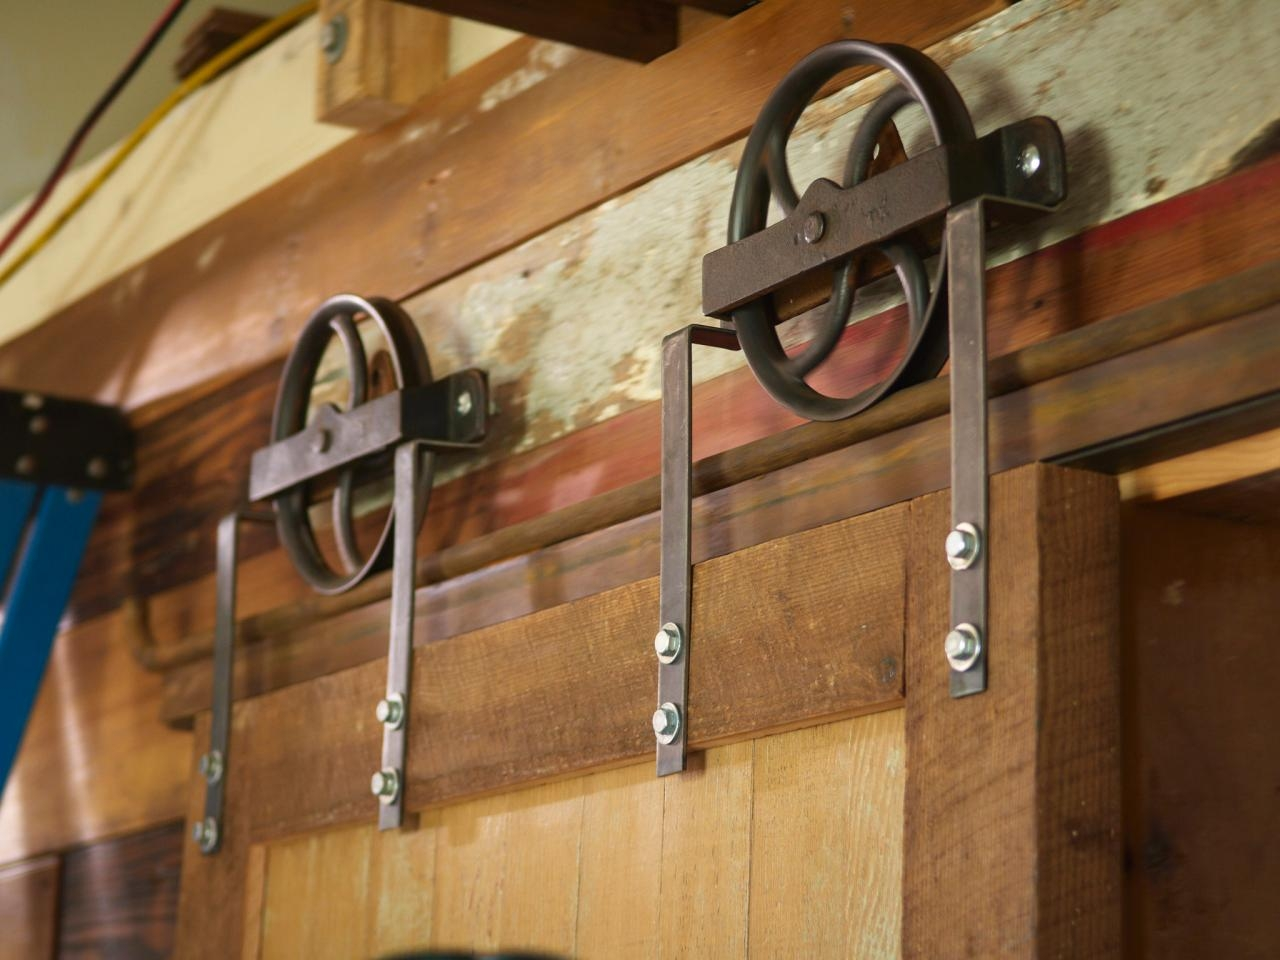 Sliding Barn Door Tracks And Rollers